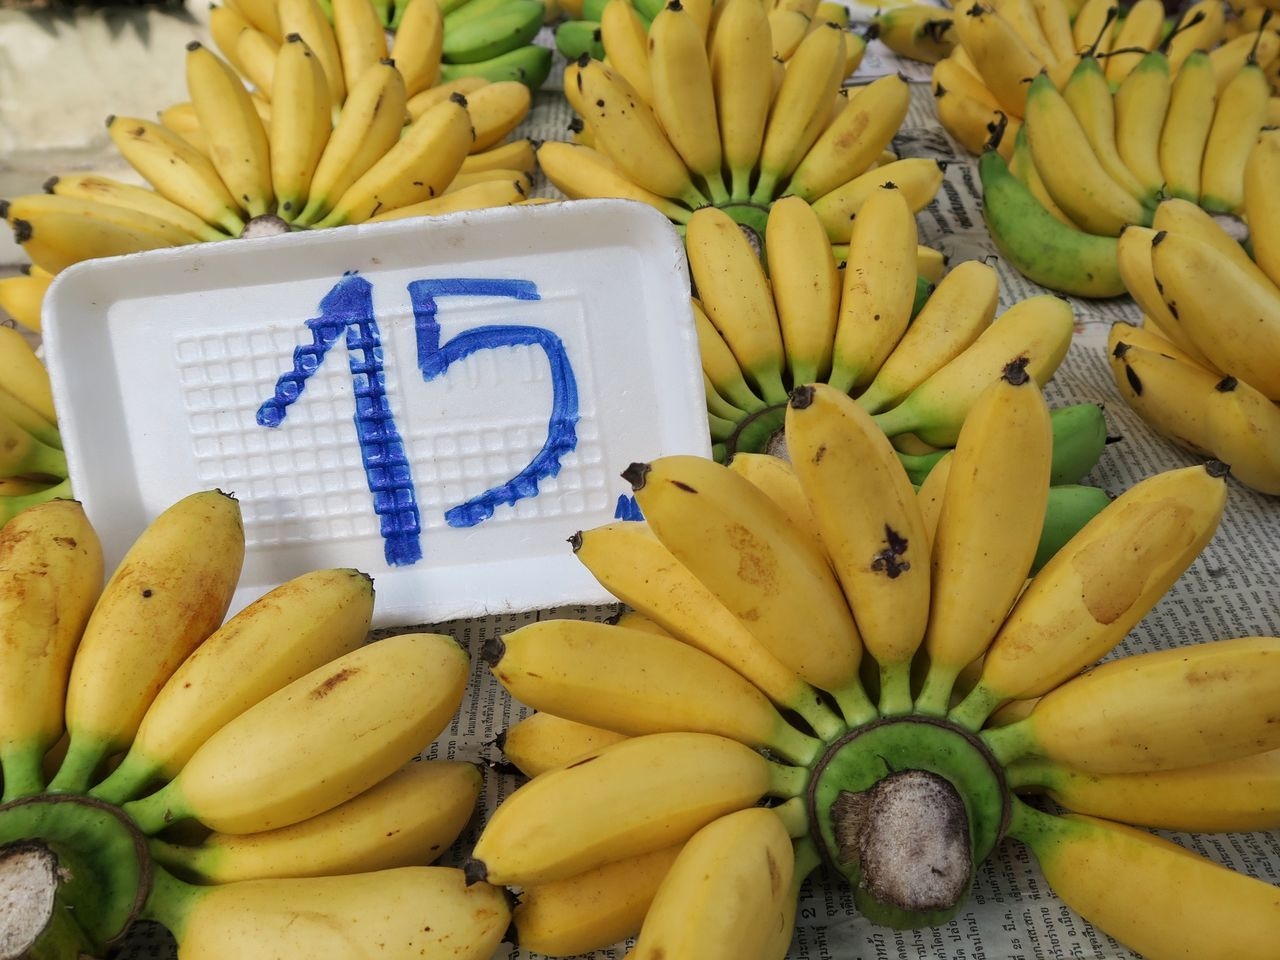 banana, fruit, food and drink, food, for sale, yellow, healthy eating, market, freshness, market stall, retail, text, no people, high angle view, choice, day, close-up, outdoors